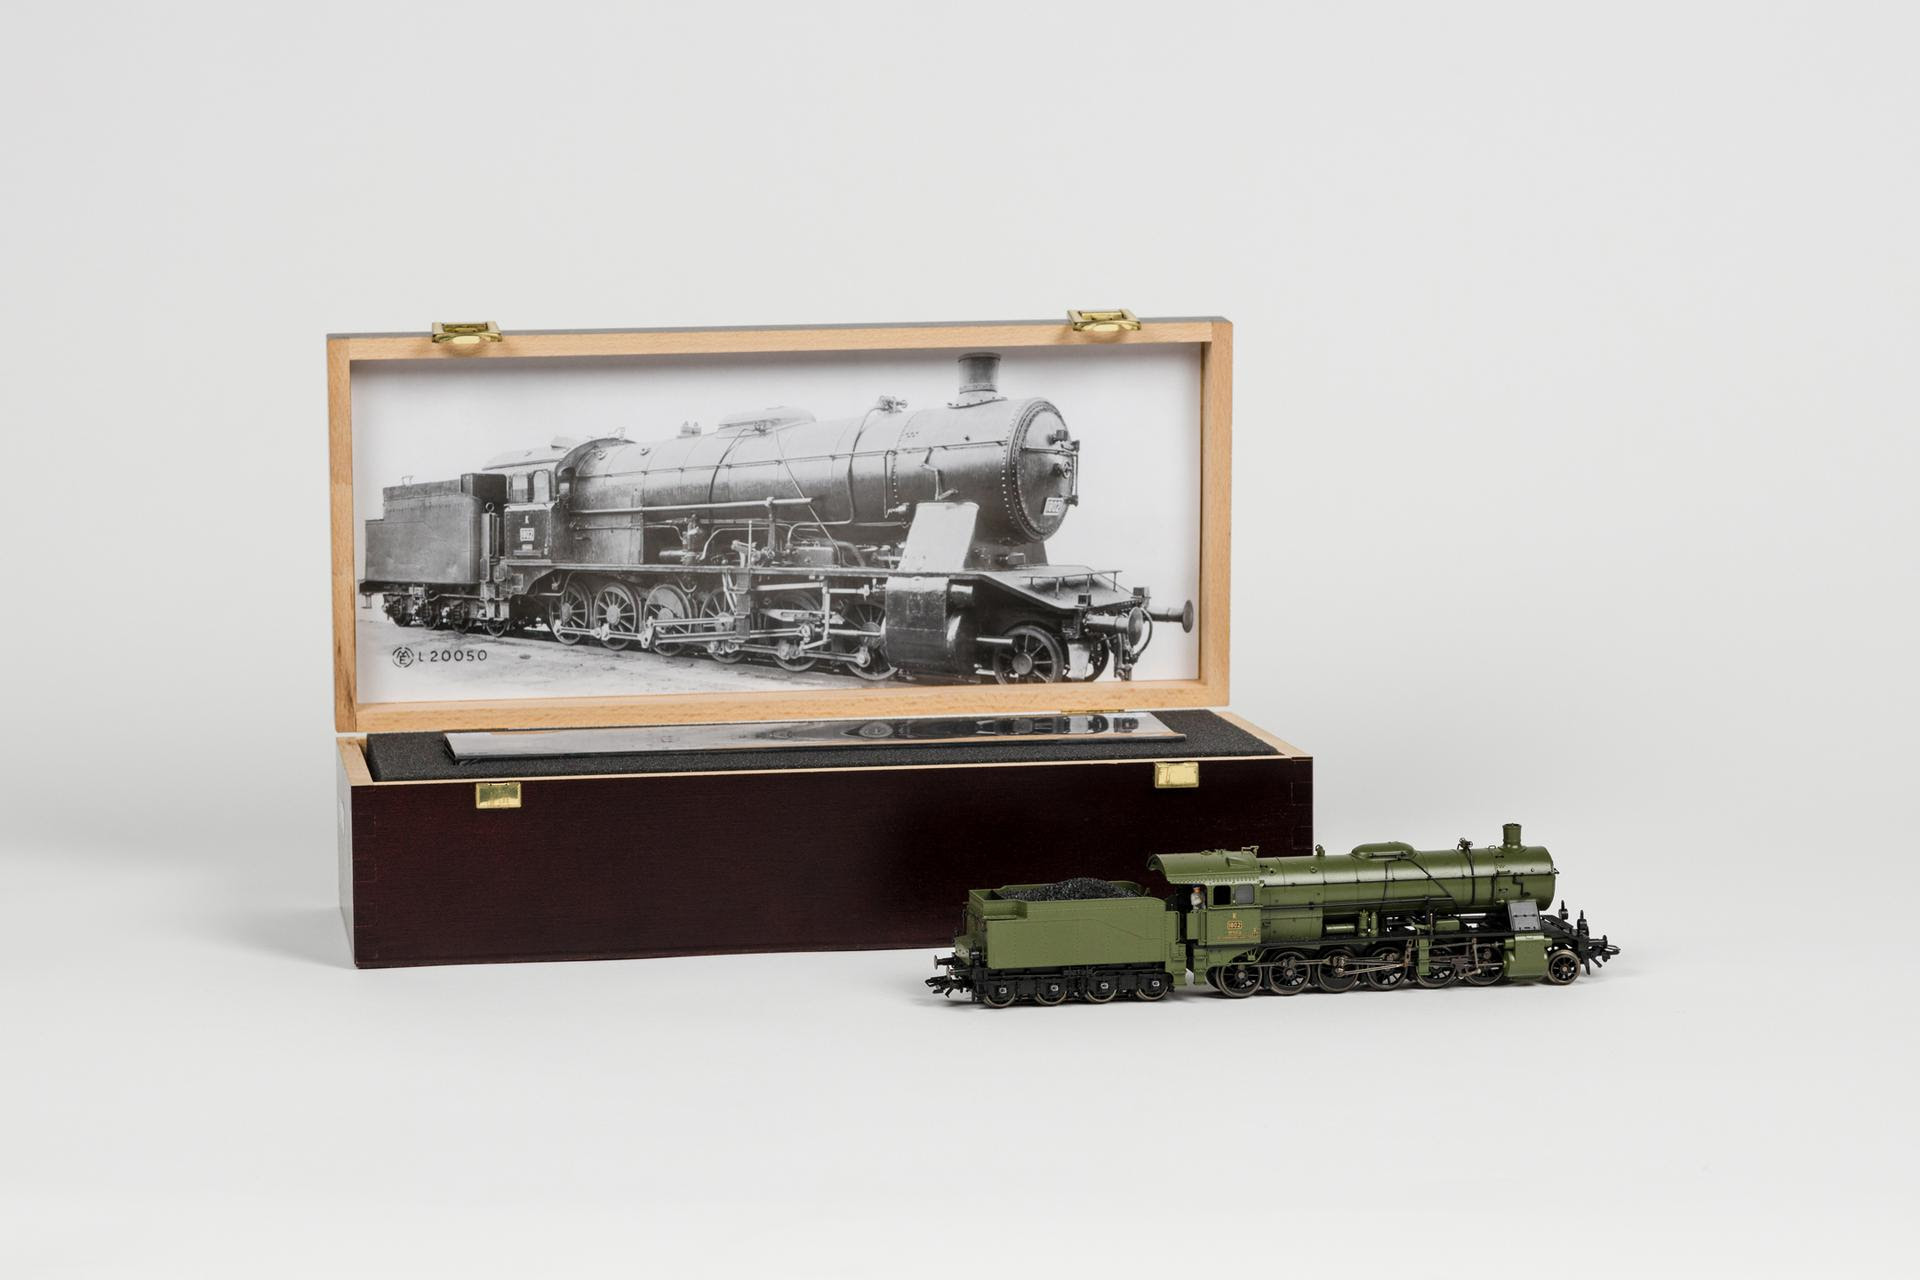 Märklin H0 - 37055 - Steam locomotive, Klasse K from the K.W.St.E, digital MFX and with many sound options, produced in 2005 and 2006 as a special, in special luxury wooden box.